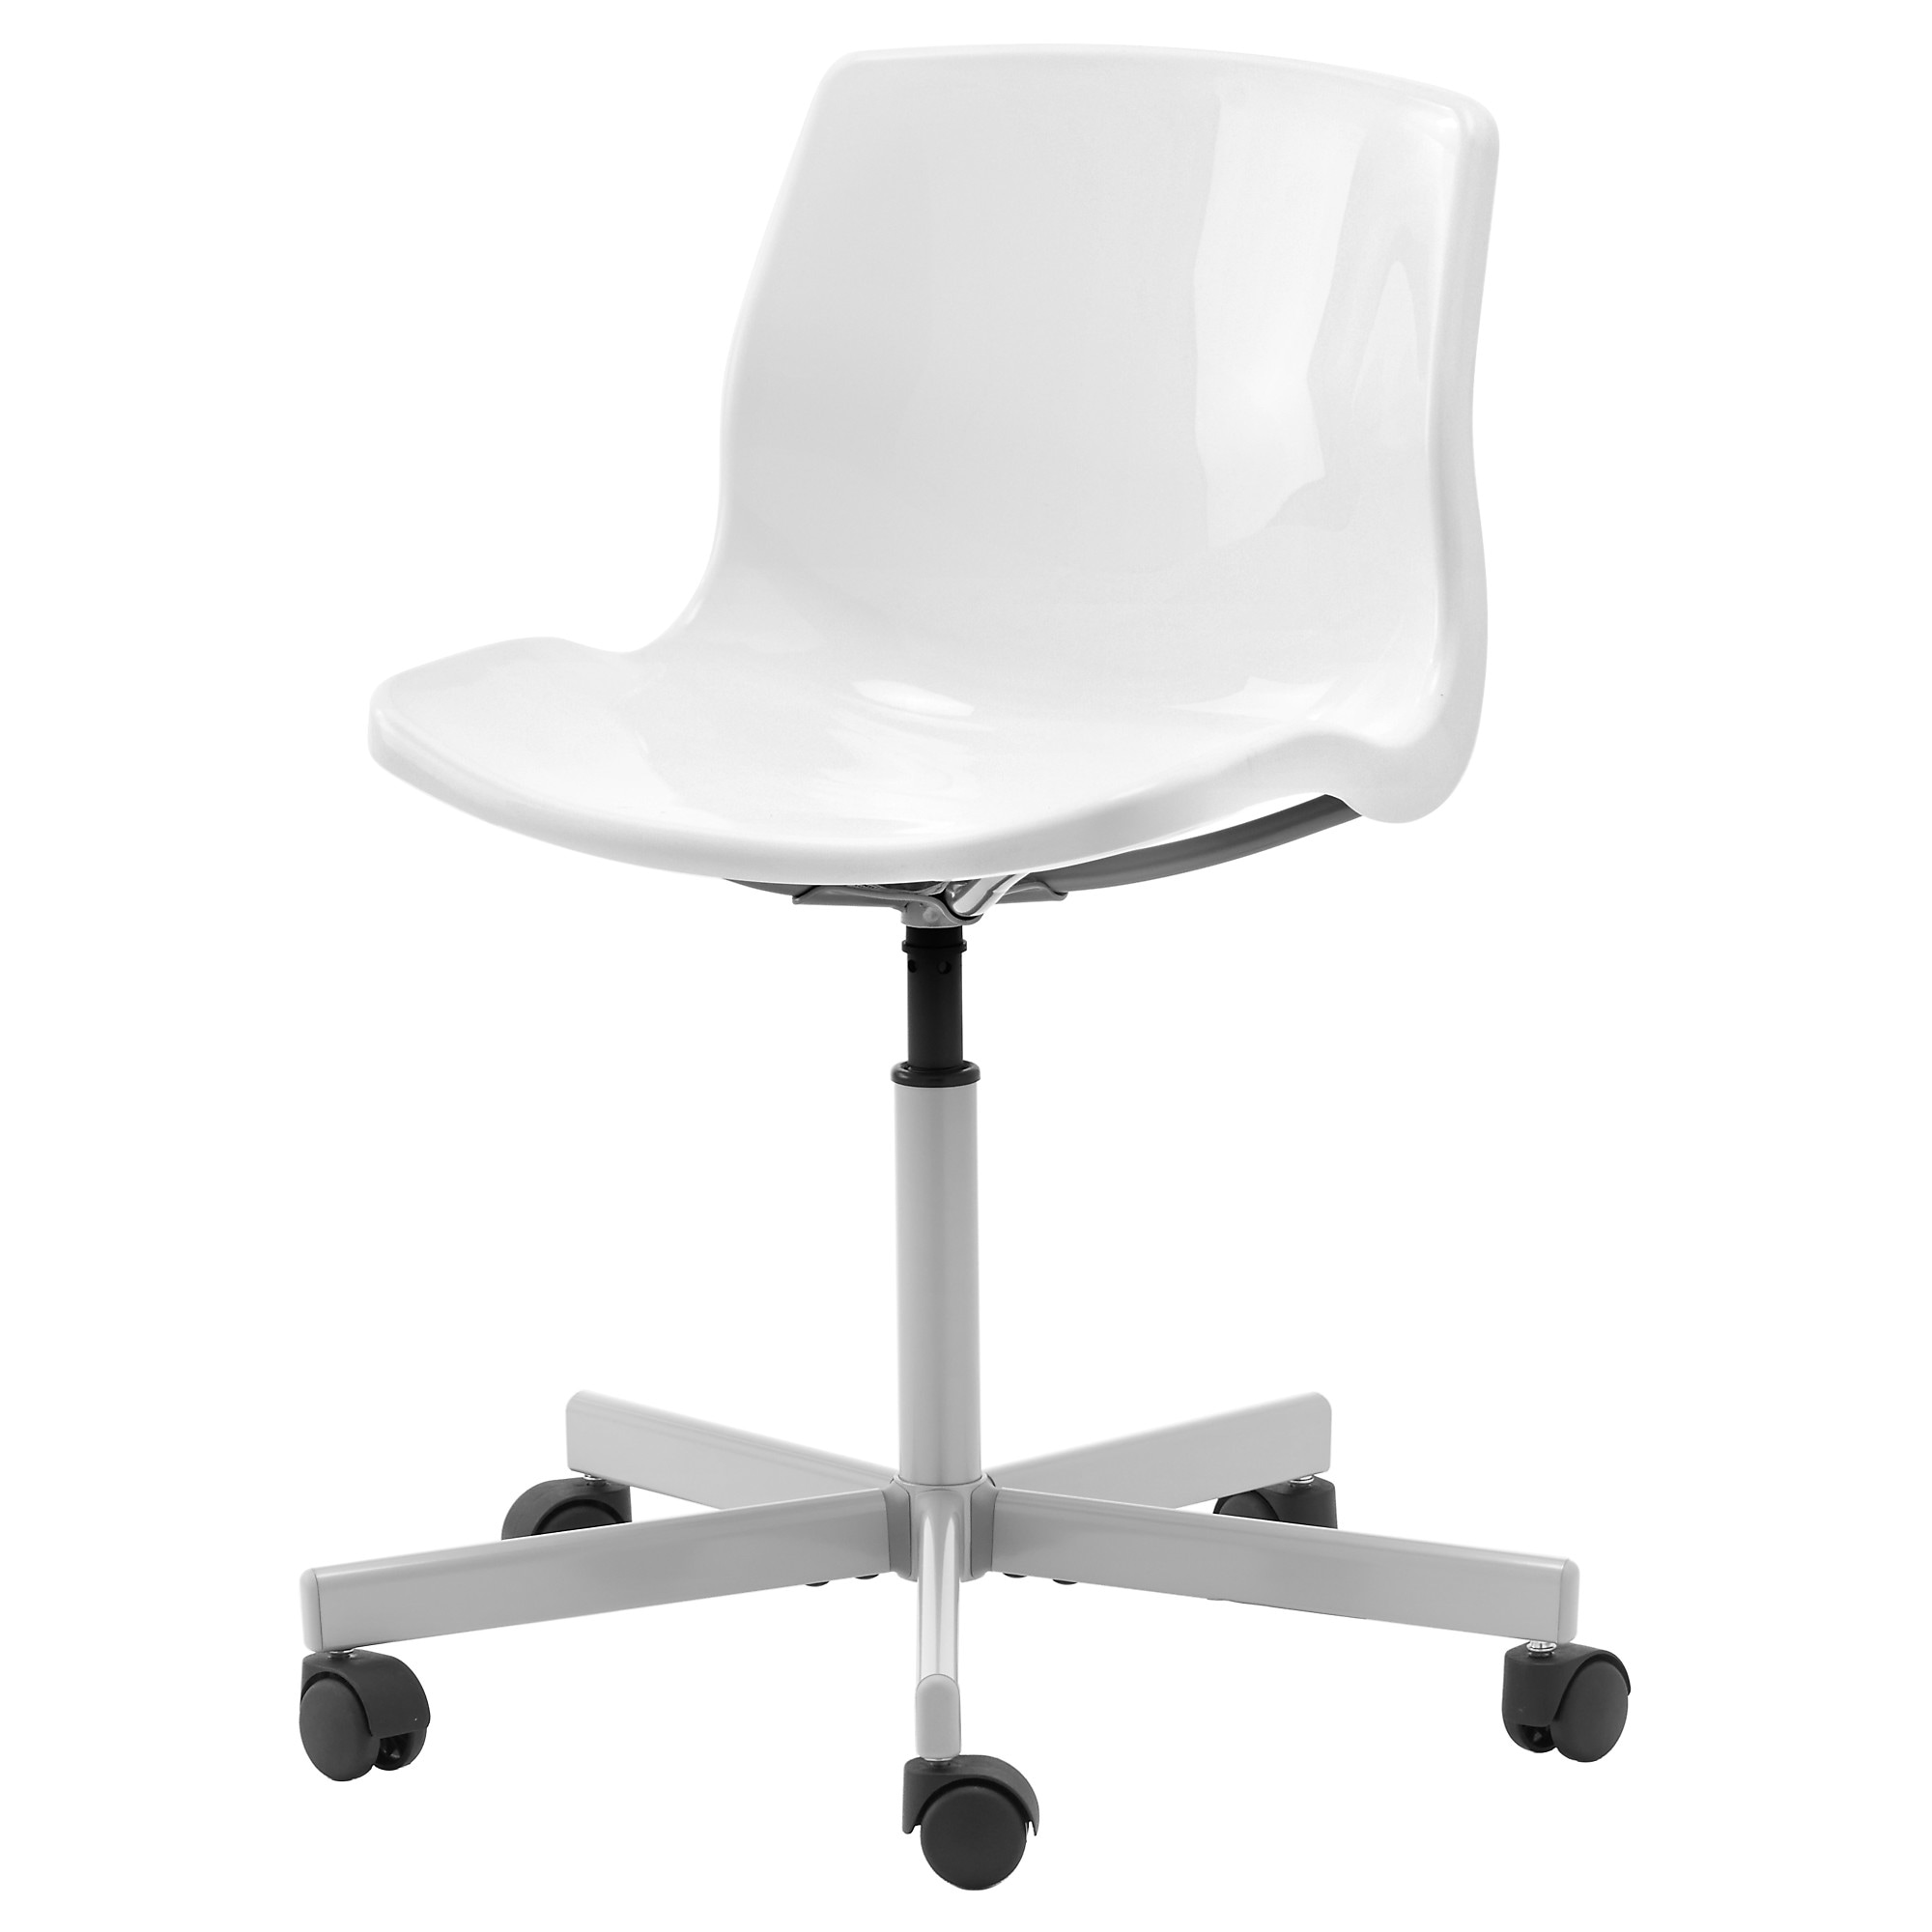 Awesome SNILLE Swivel Chair   IKEA